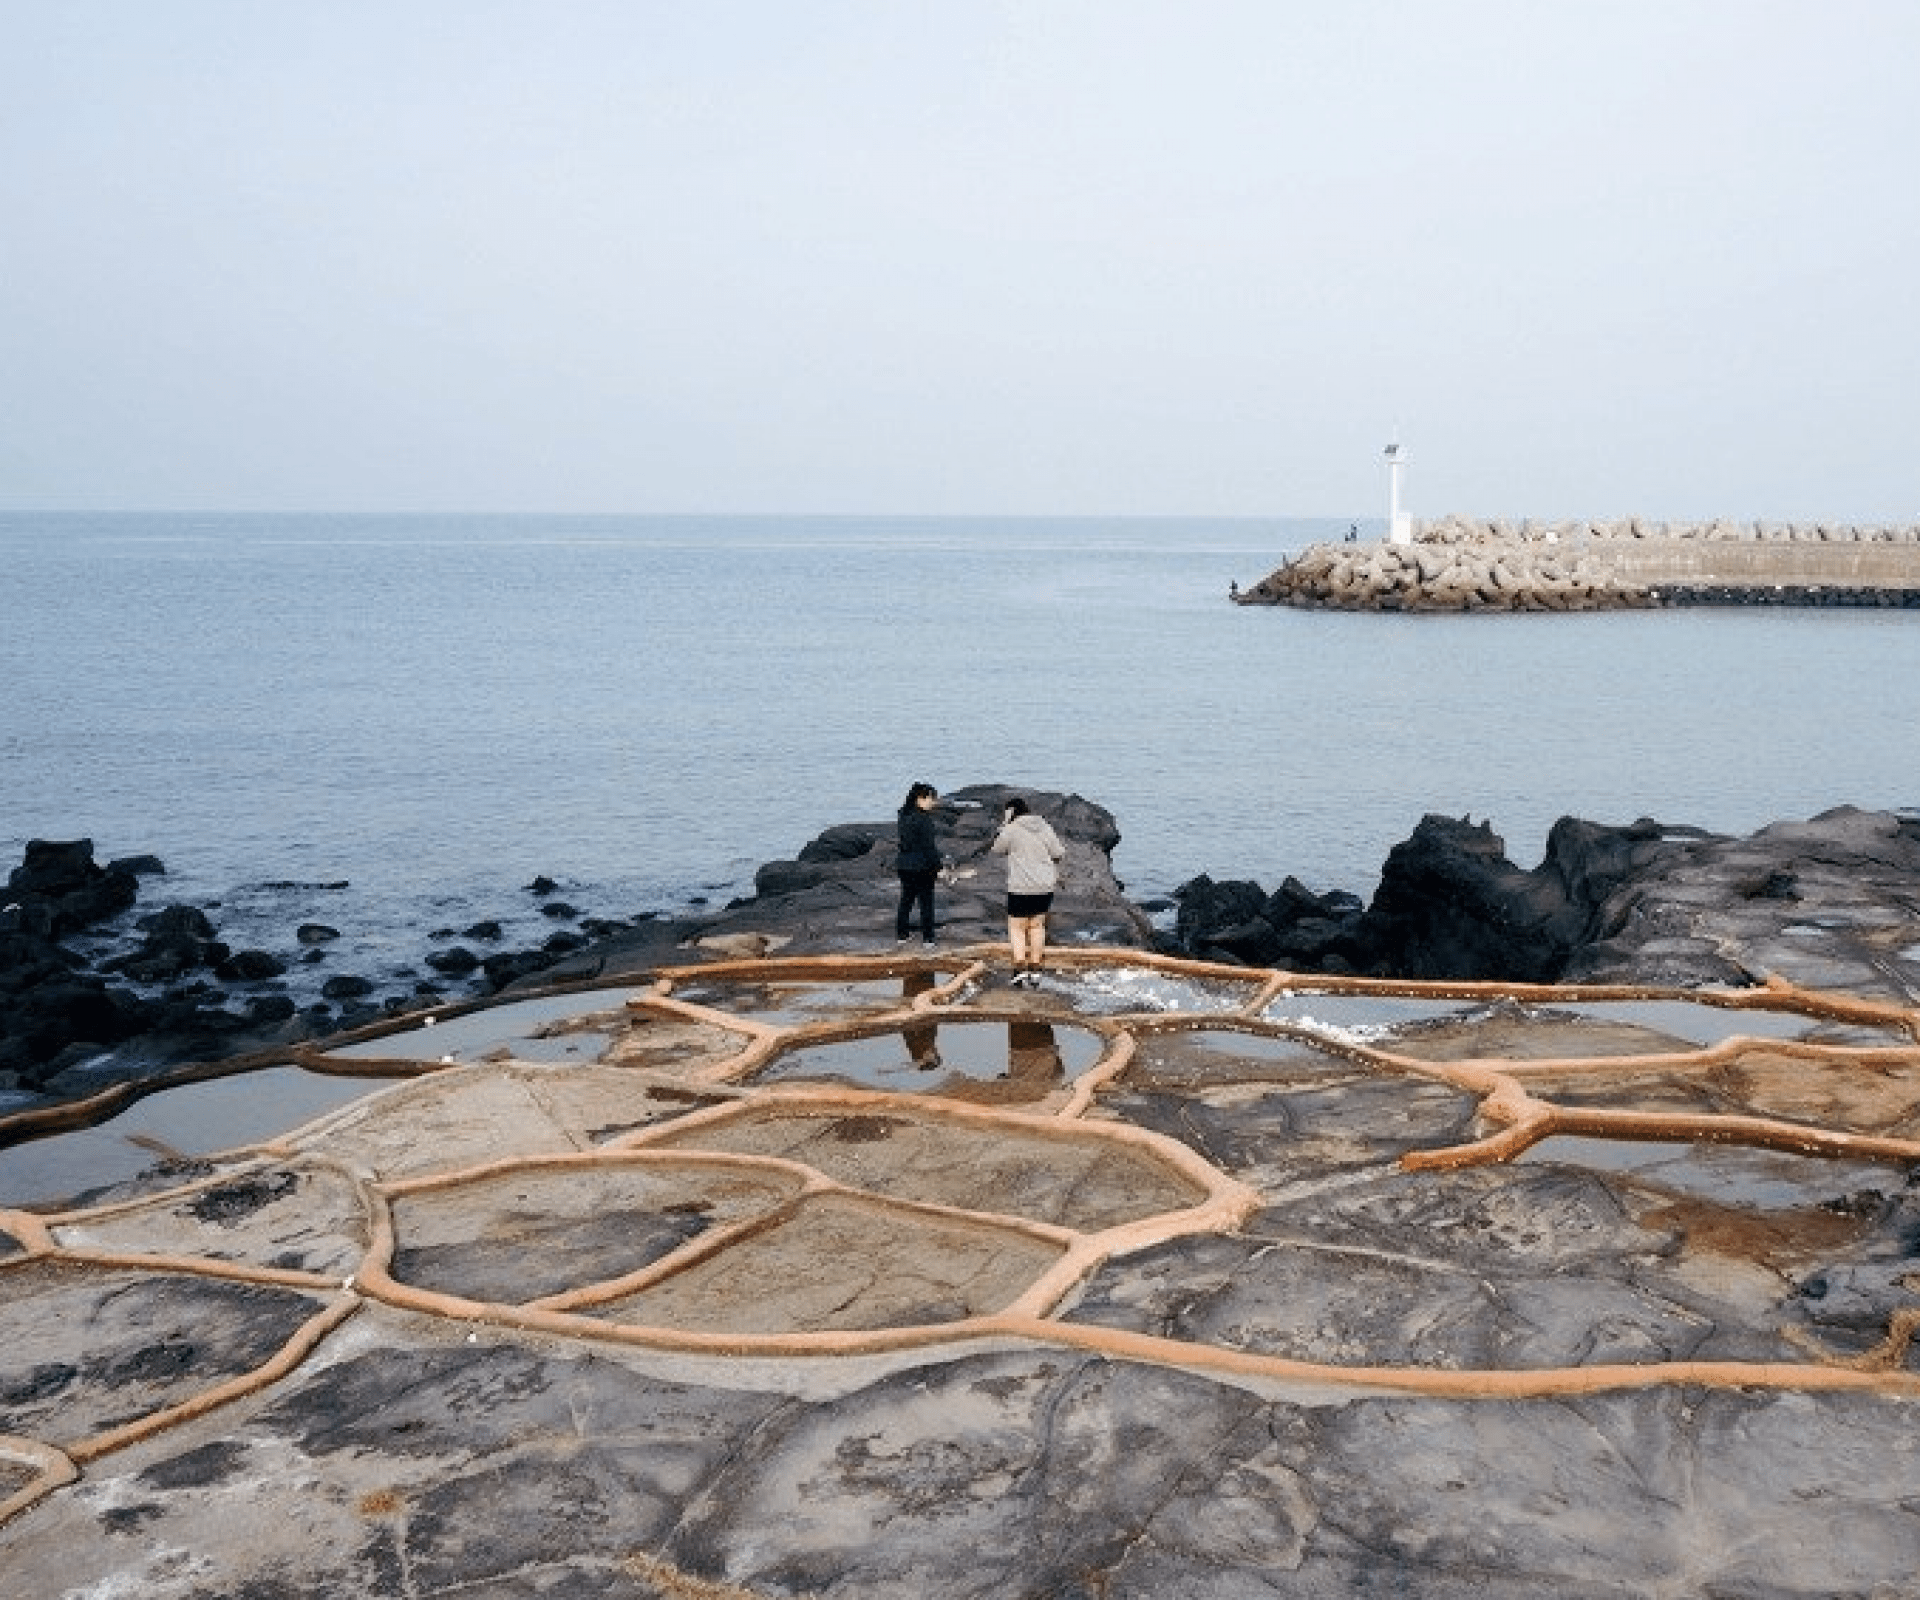 Gueomri Stone Salt Farm | Aewol-eup, Jeju-do